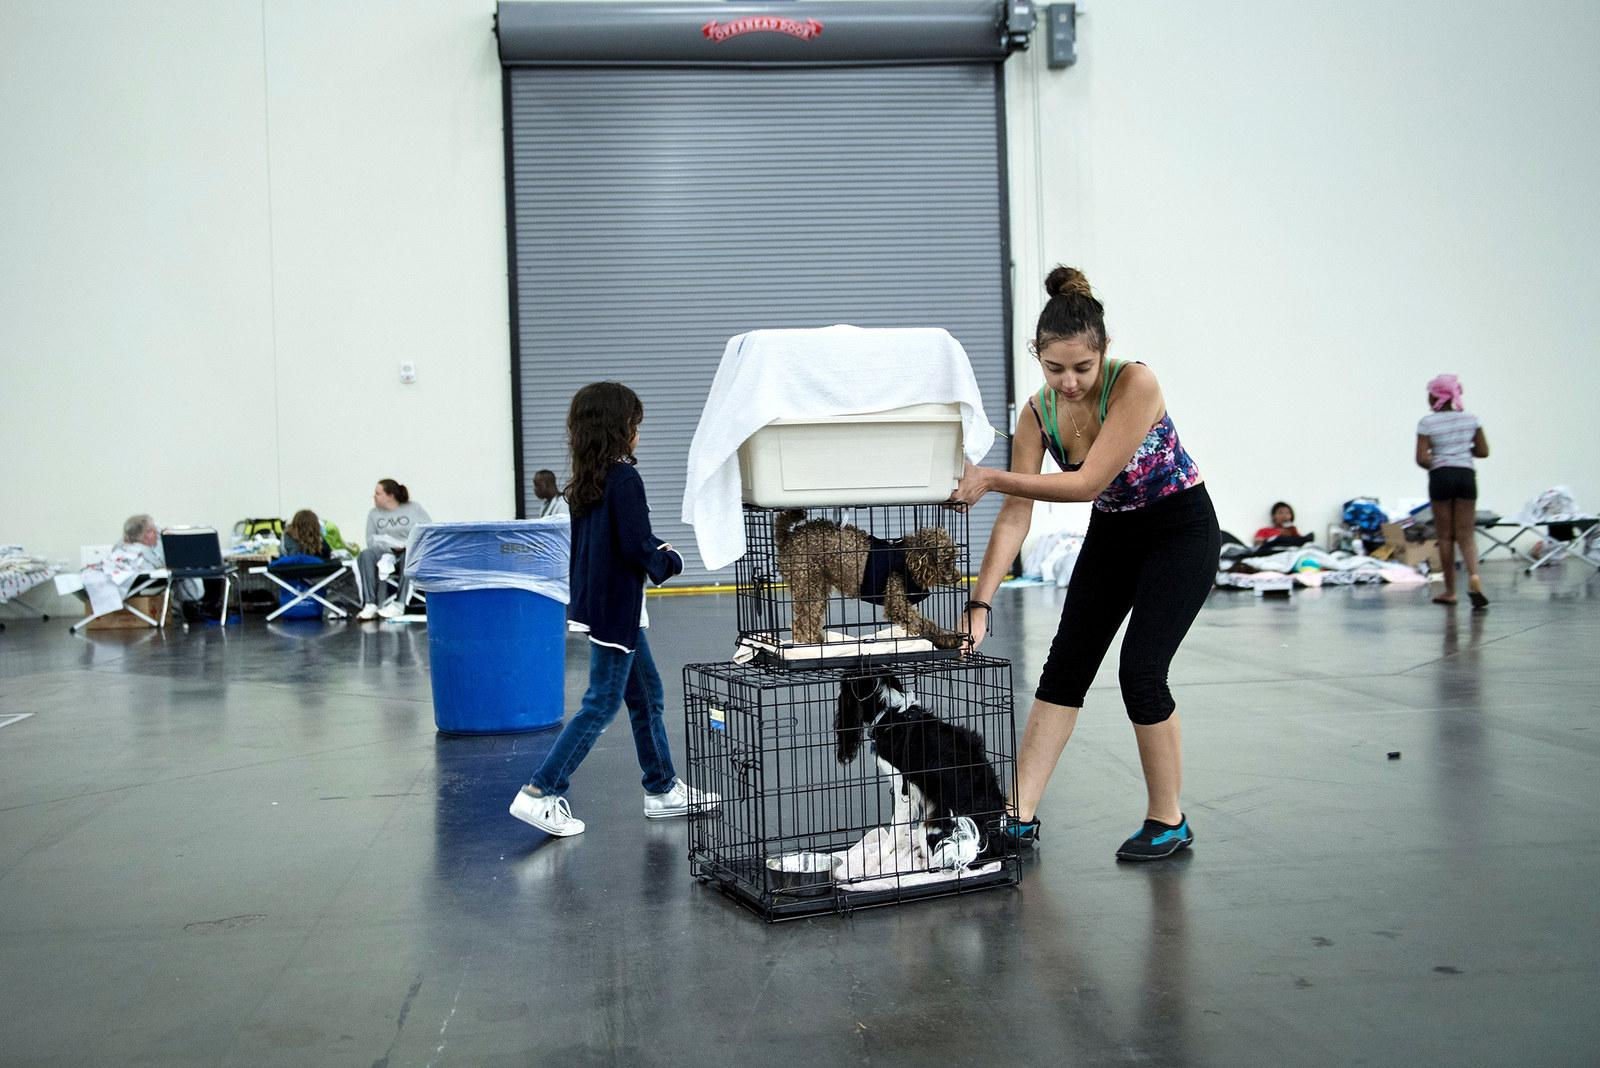 Flood victims move crates with pets at a shelter in the George R. Brown Convention Center in Houston on Aug. 28.